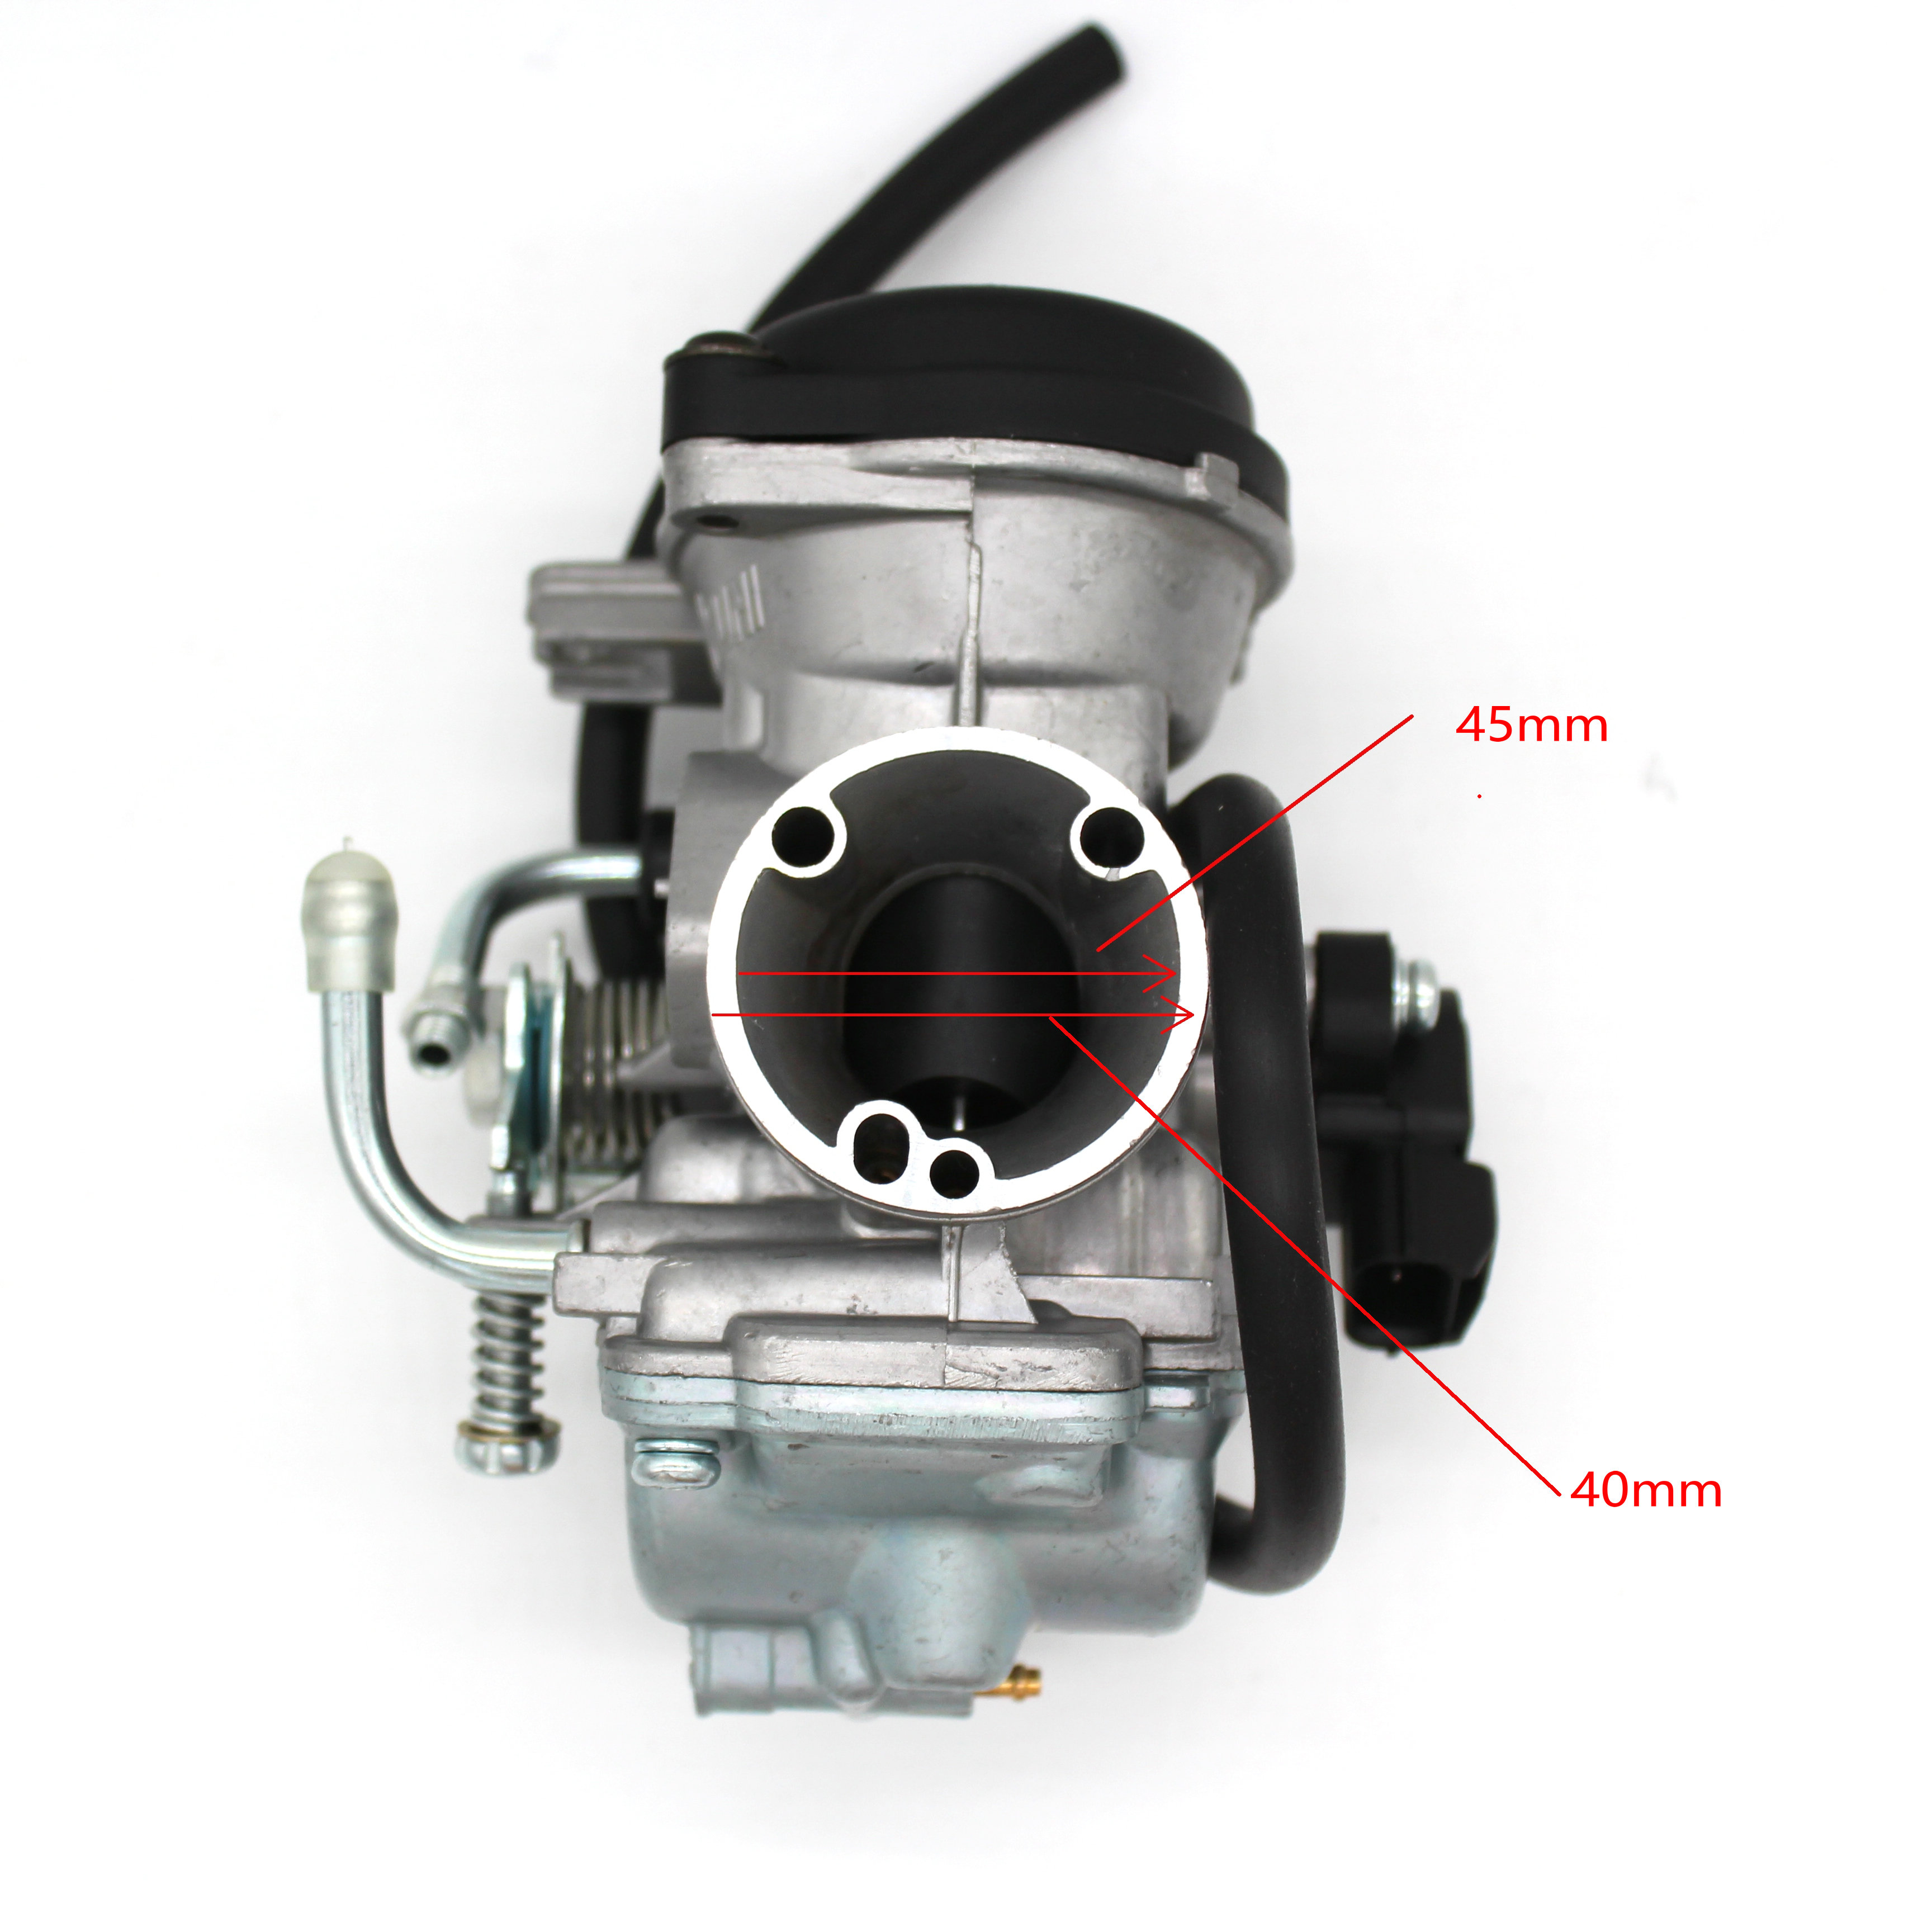 Motorcycle Carburetor For <font><b>Yamaha</b></font> <font><b>FZ16</b></font> Byson FSZ FAZER 150 For India Carb Motocycle <font><b>Parts</b></font> image